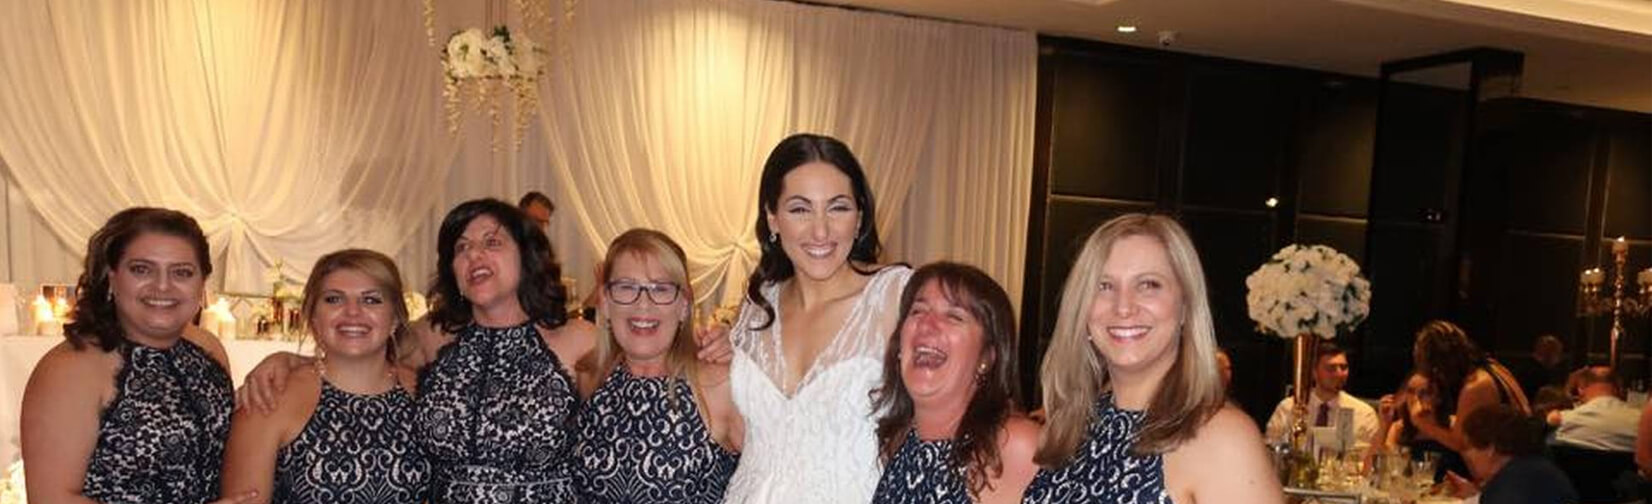 six women turned up to a wedding in the same dress